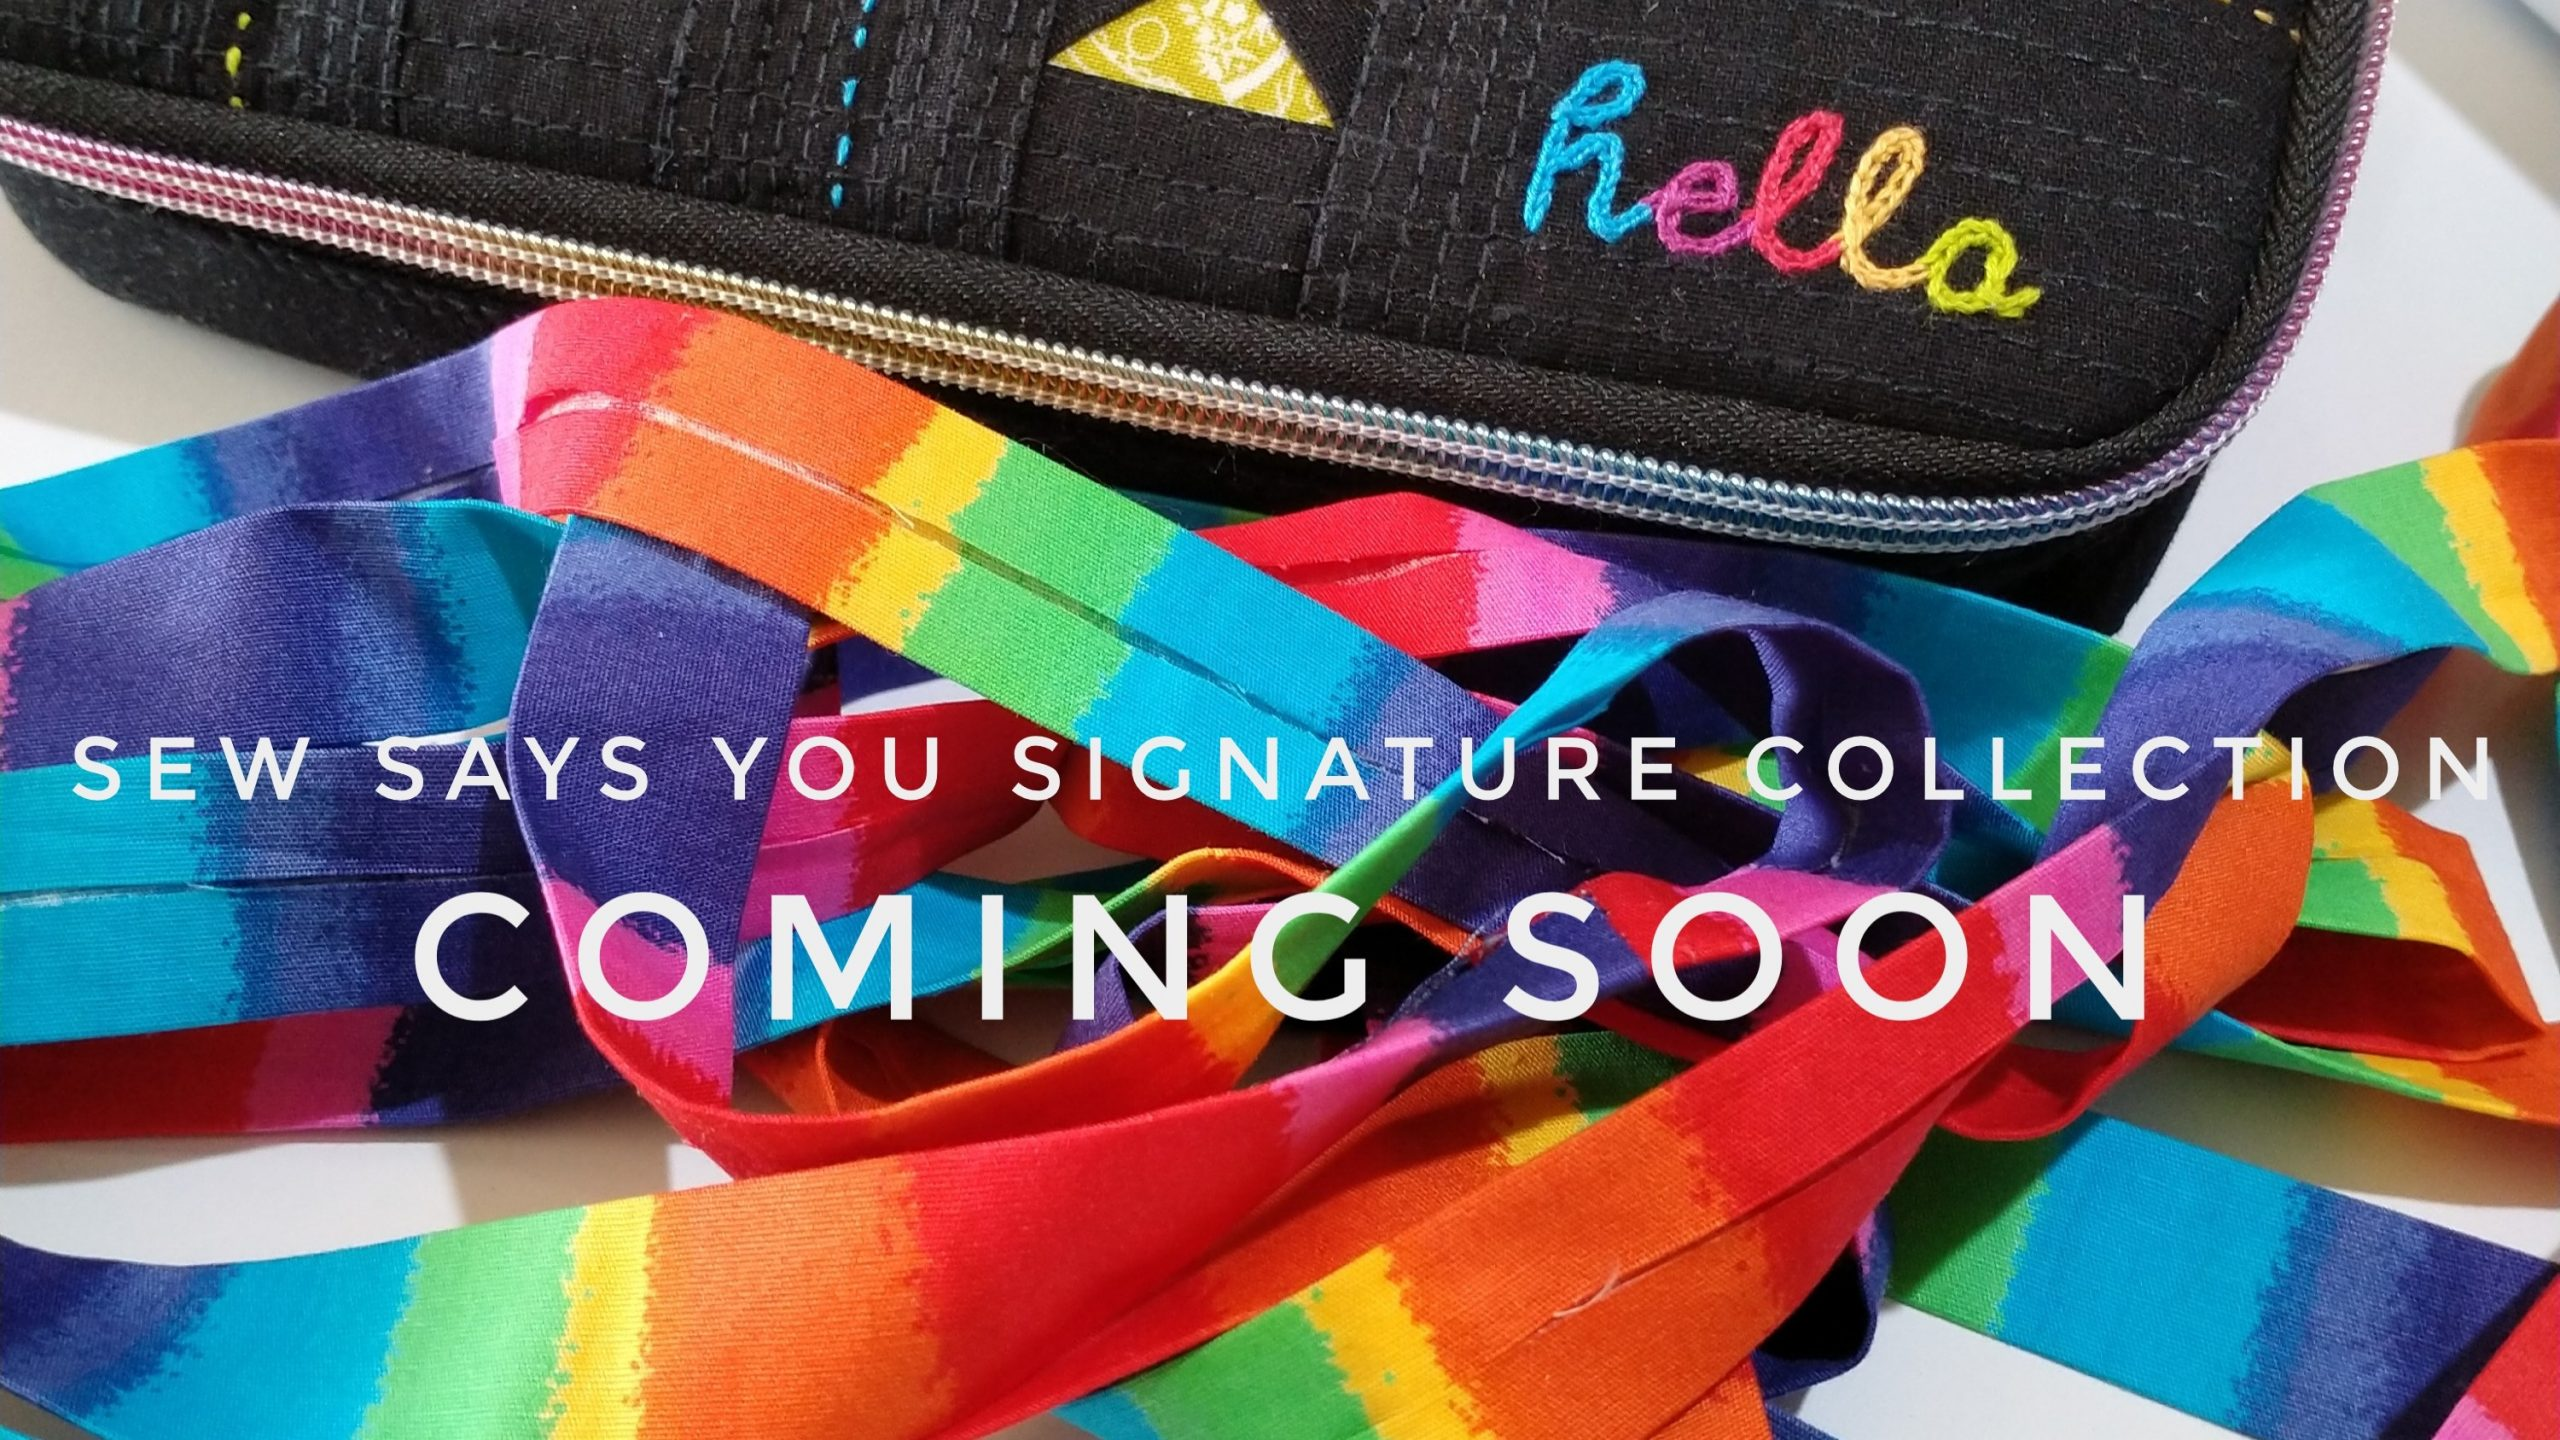 Sew Says You Signature Collection - Coming Soon